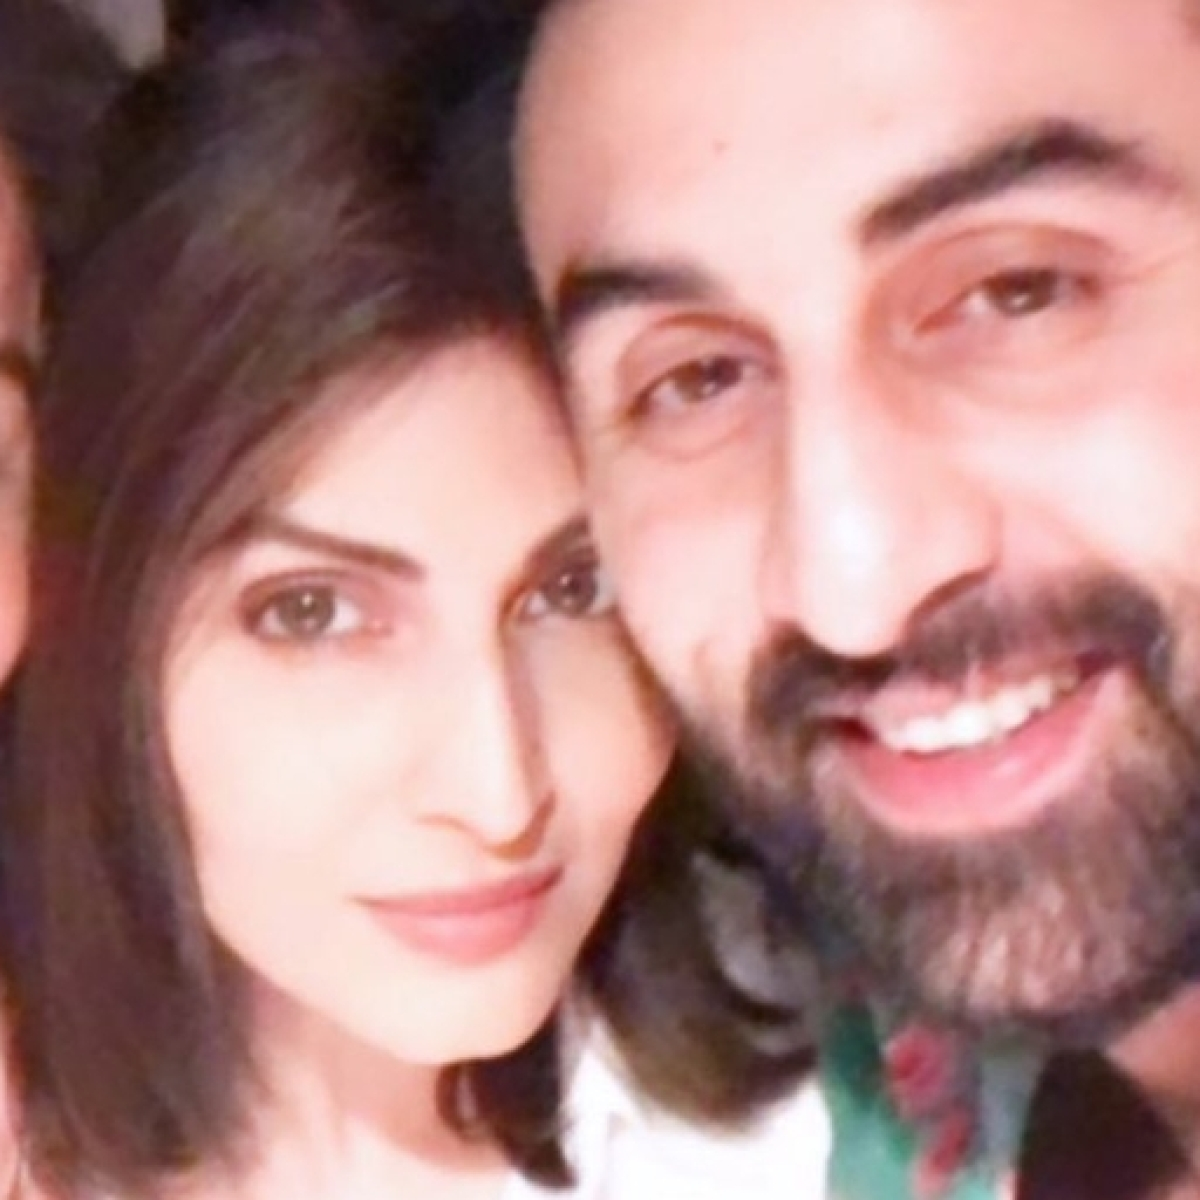 Riddhima Kapoor rubbishes rumours of Ranbir, Neetu and Karan Johar testing positive for COVID-19